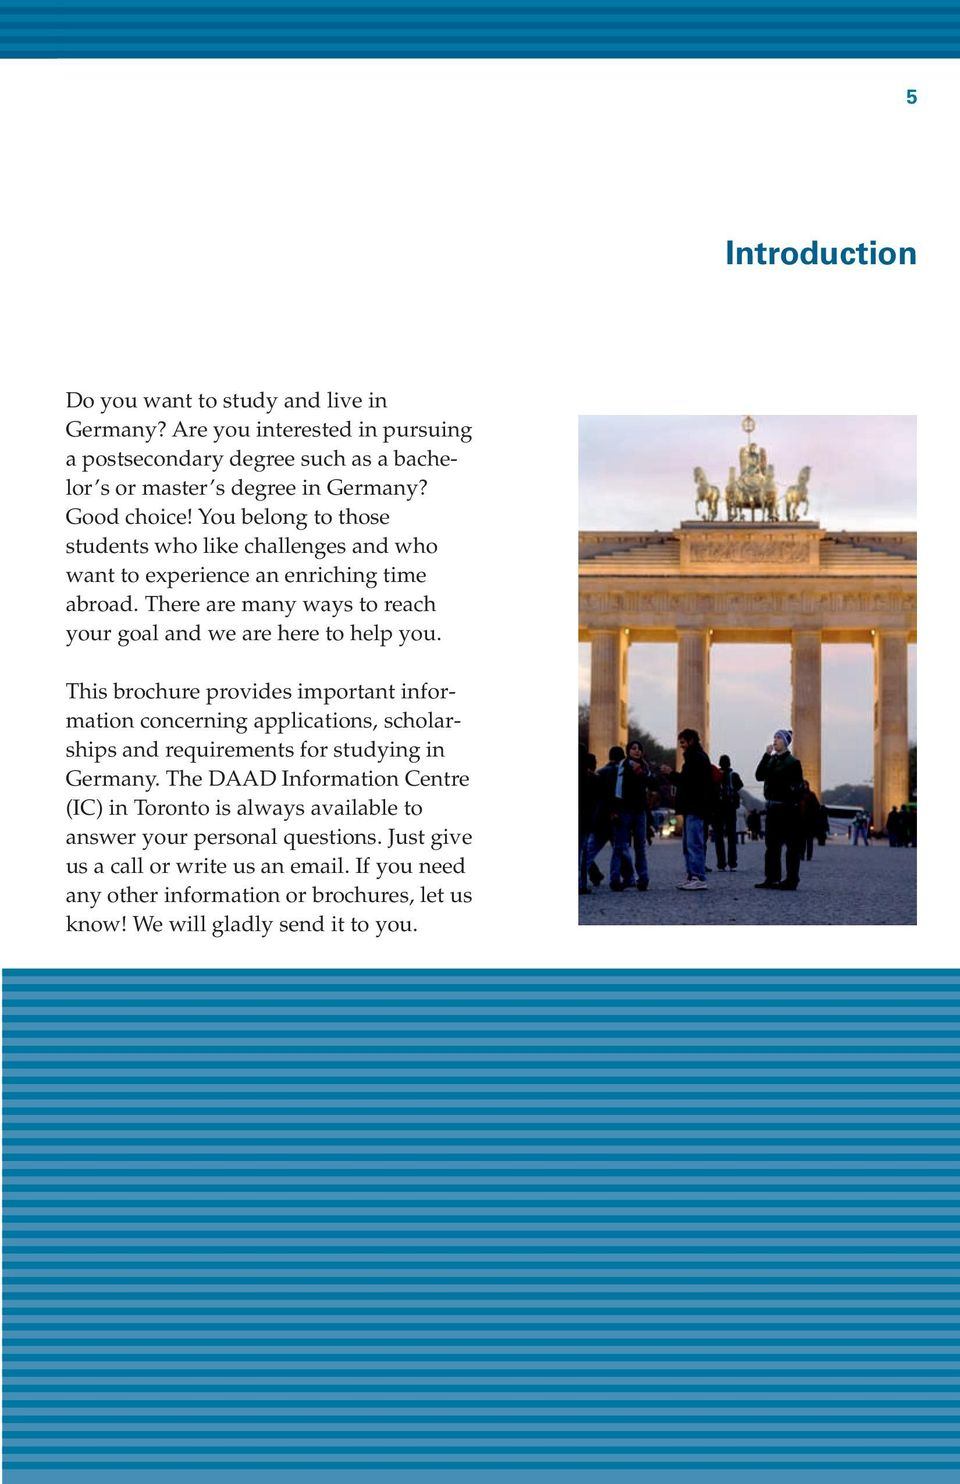 This brochure provides important information concerning applications, scholarships and requirements for studying in Germany.